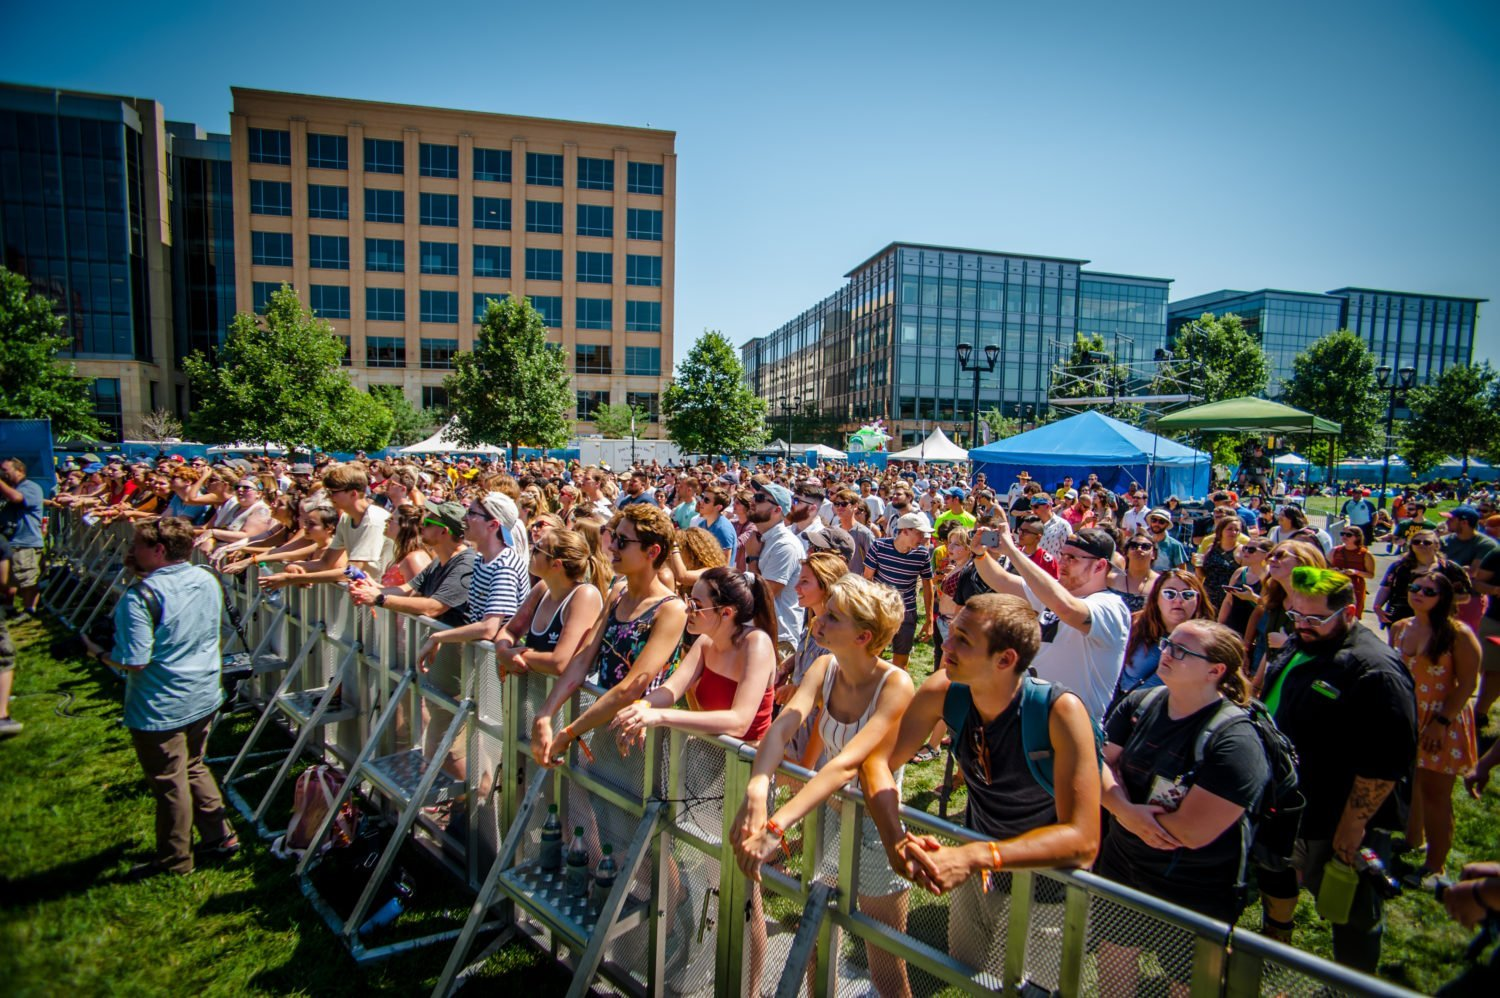 The crowd during BJ the Chicago Kid's performance at 80/35 Music Festival 2018 in Des Moines, Iowa